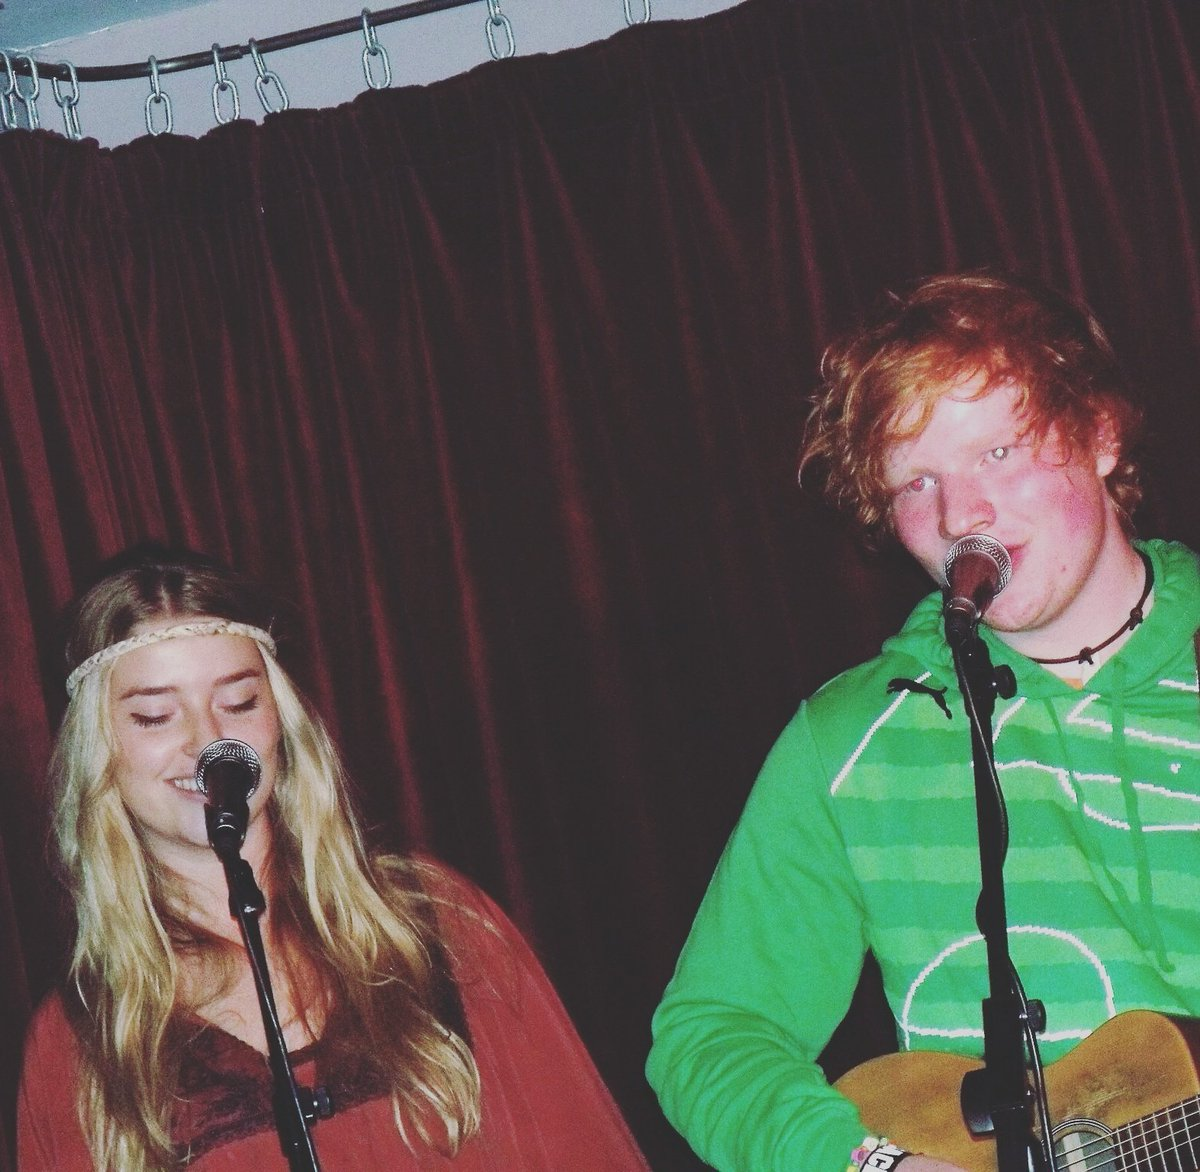 As if this was 6 years ago today  @edsheeran  ! The headband